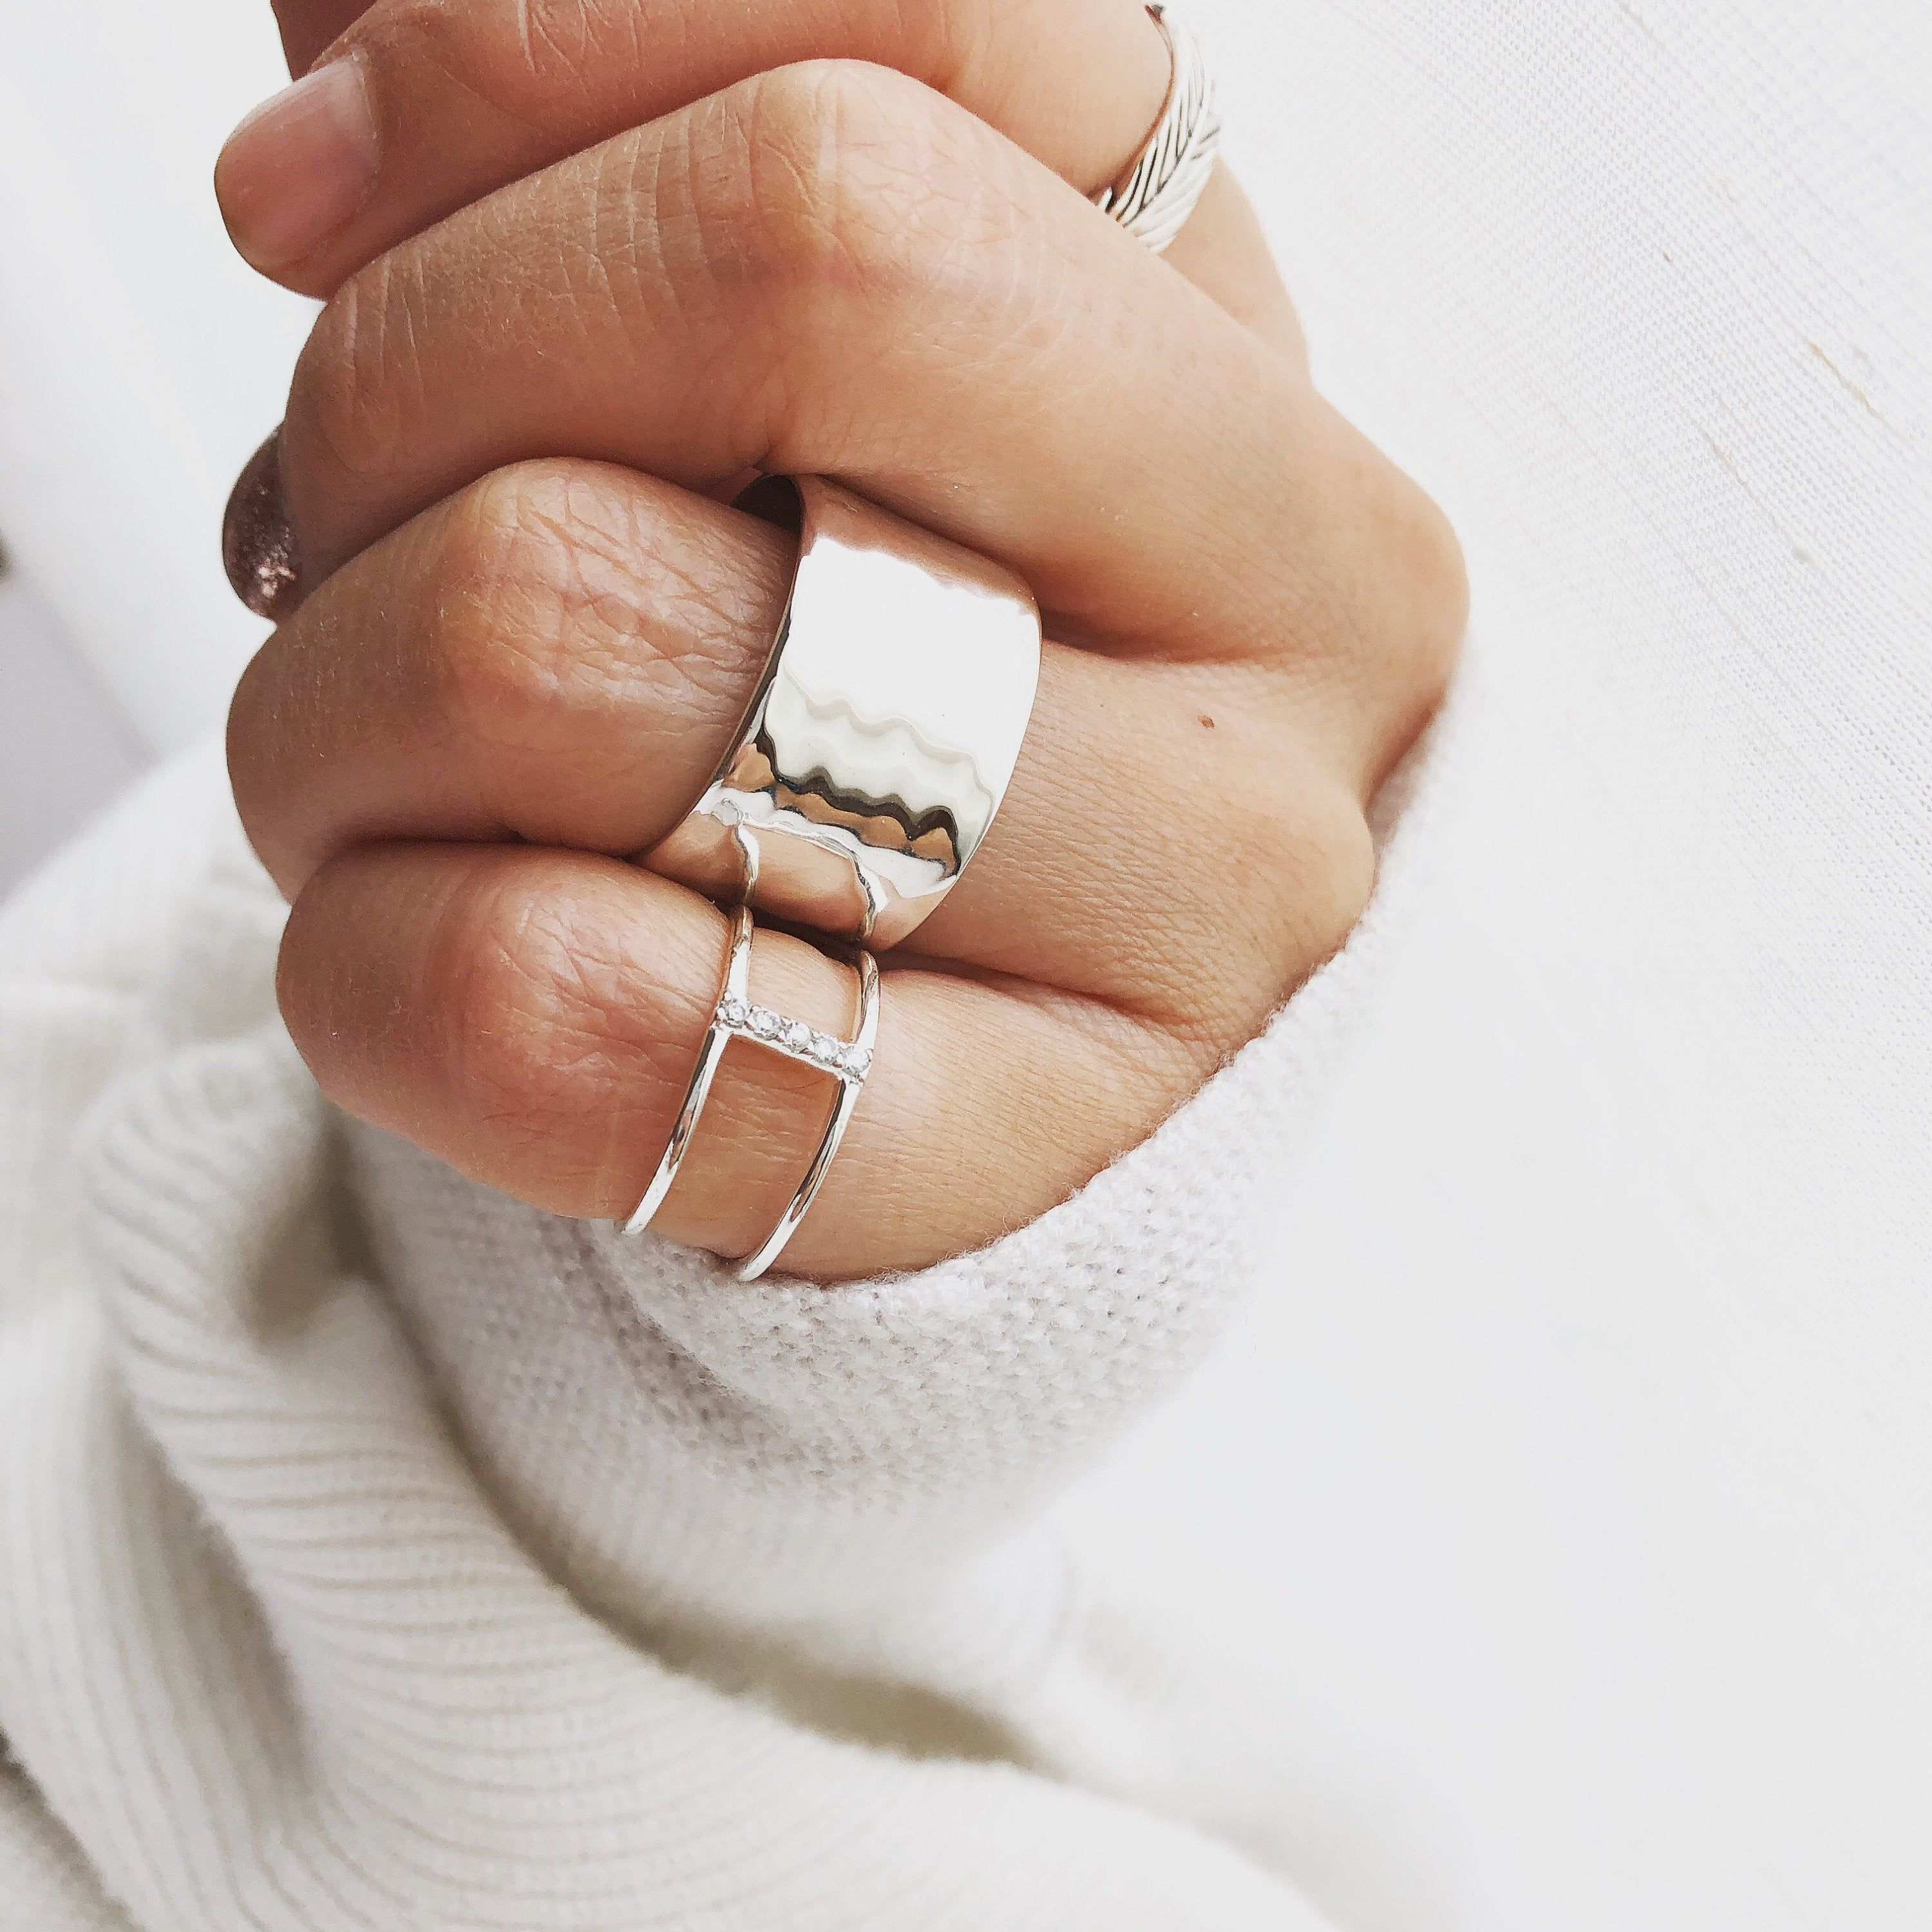 Ring Silver,Statement Ring,Hammered Ring,Solitaire Ring,Ring Handmade,Wedding Gift,Engagement Gift,For Her,Gold Jewelry,Wedding Jewelry,Ring